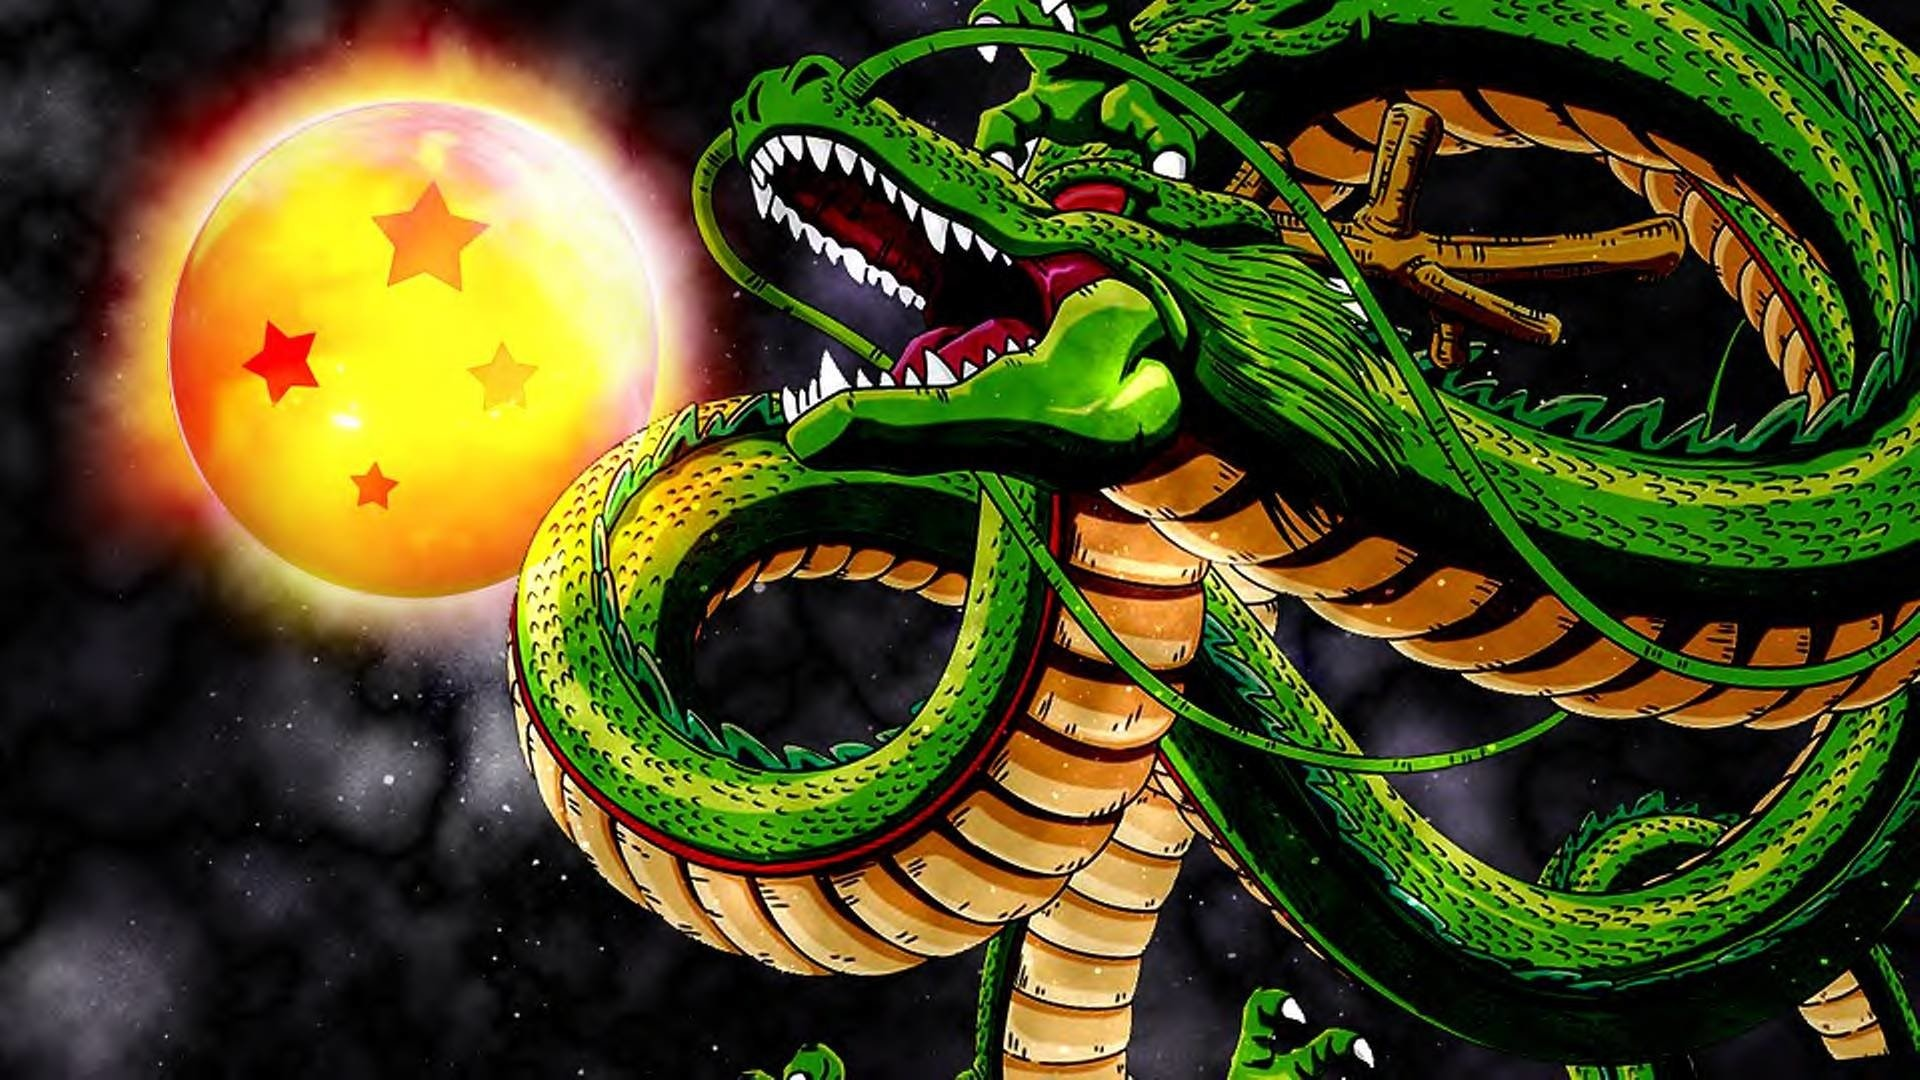 Wallpaper Hd Shenron Wallpapertag